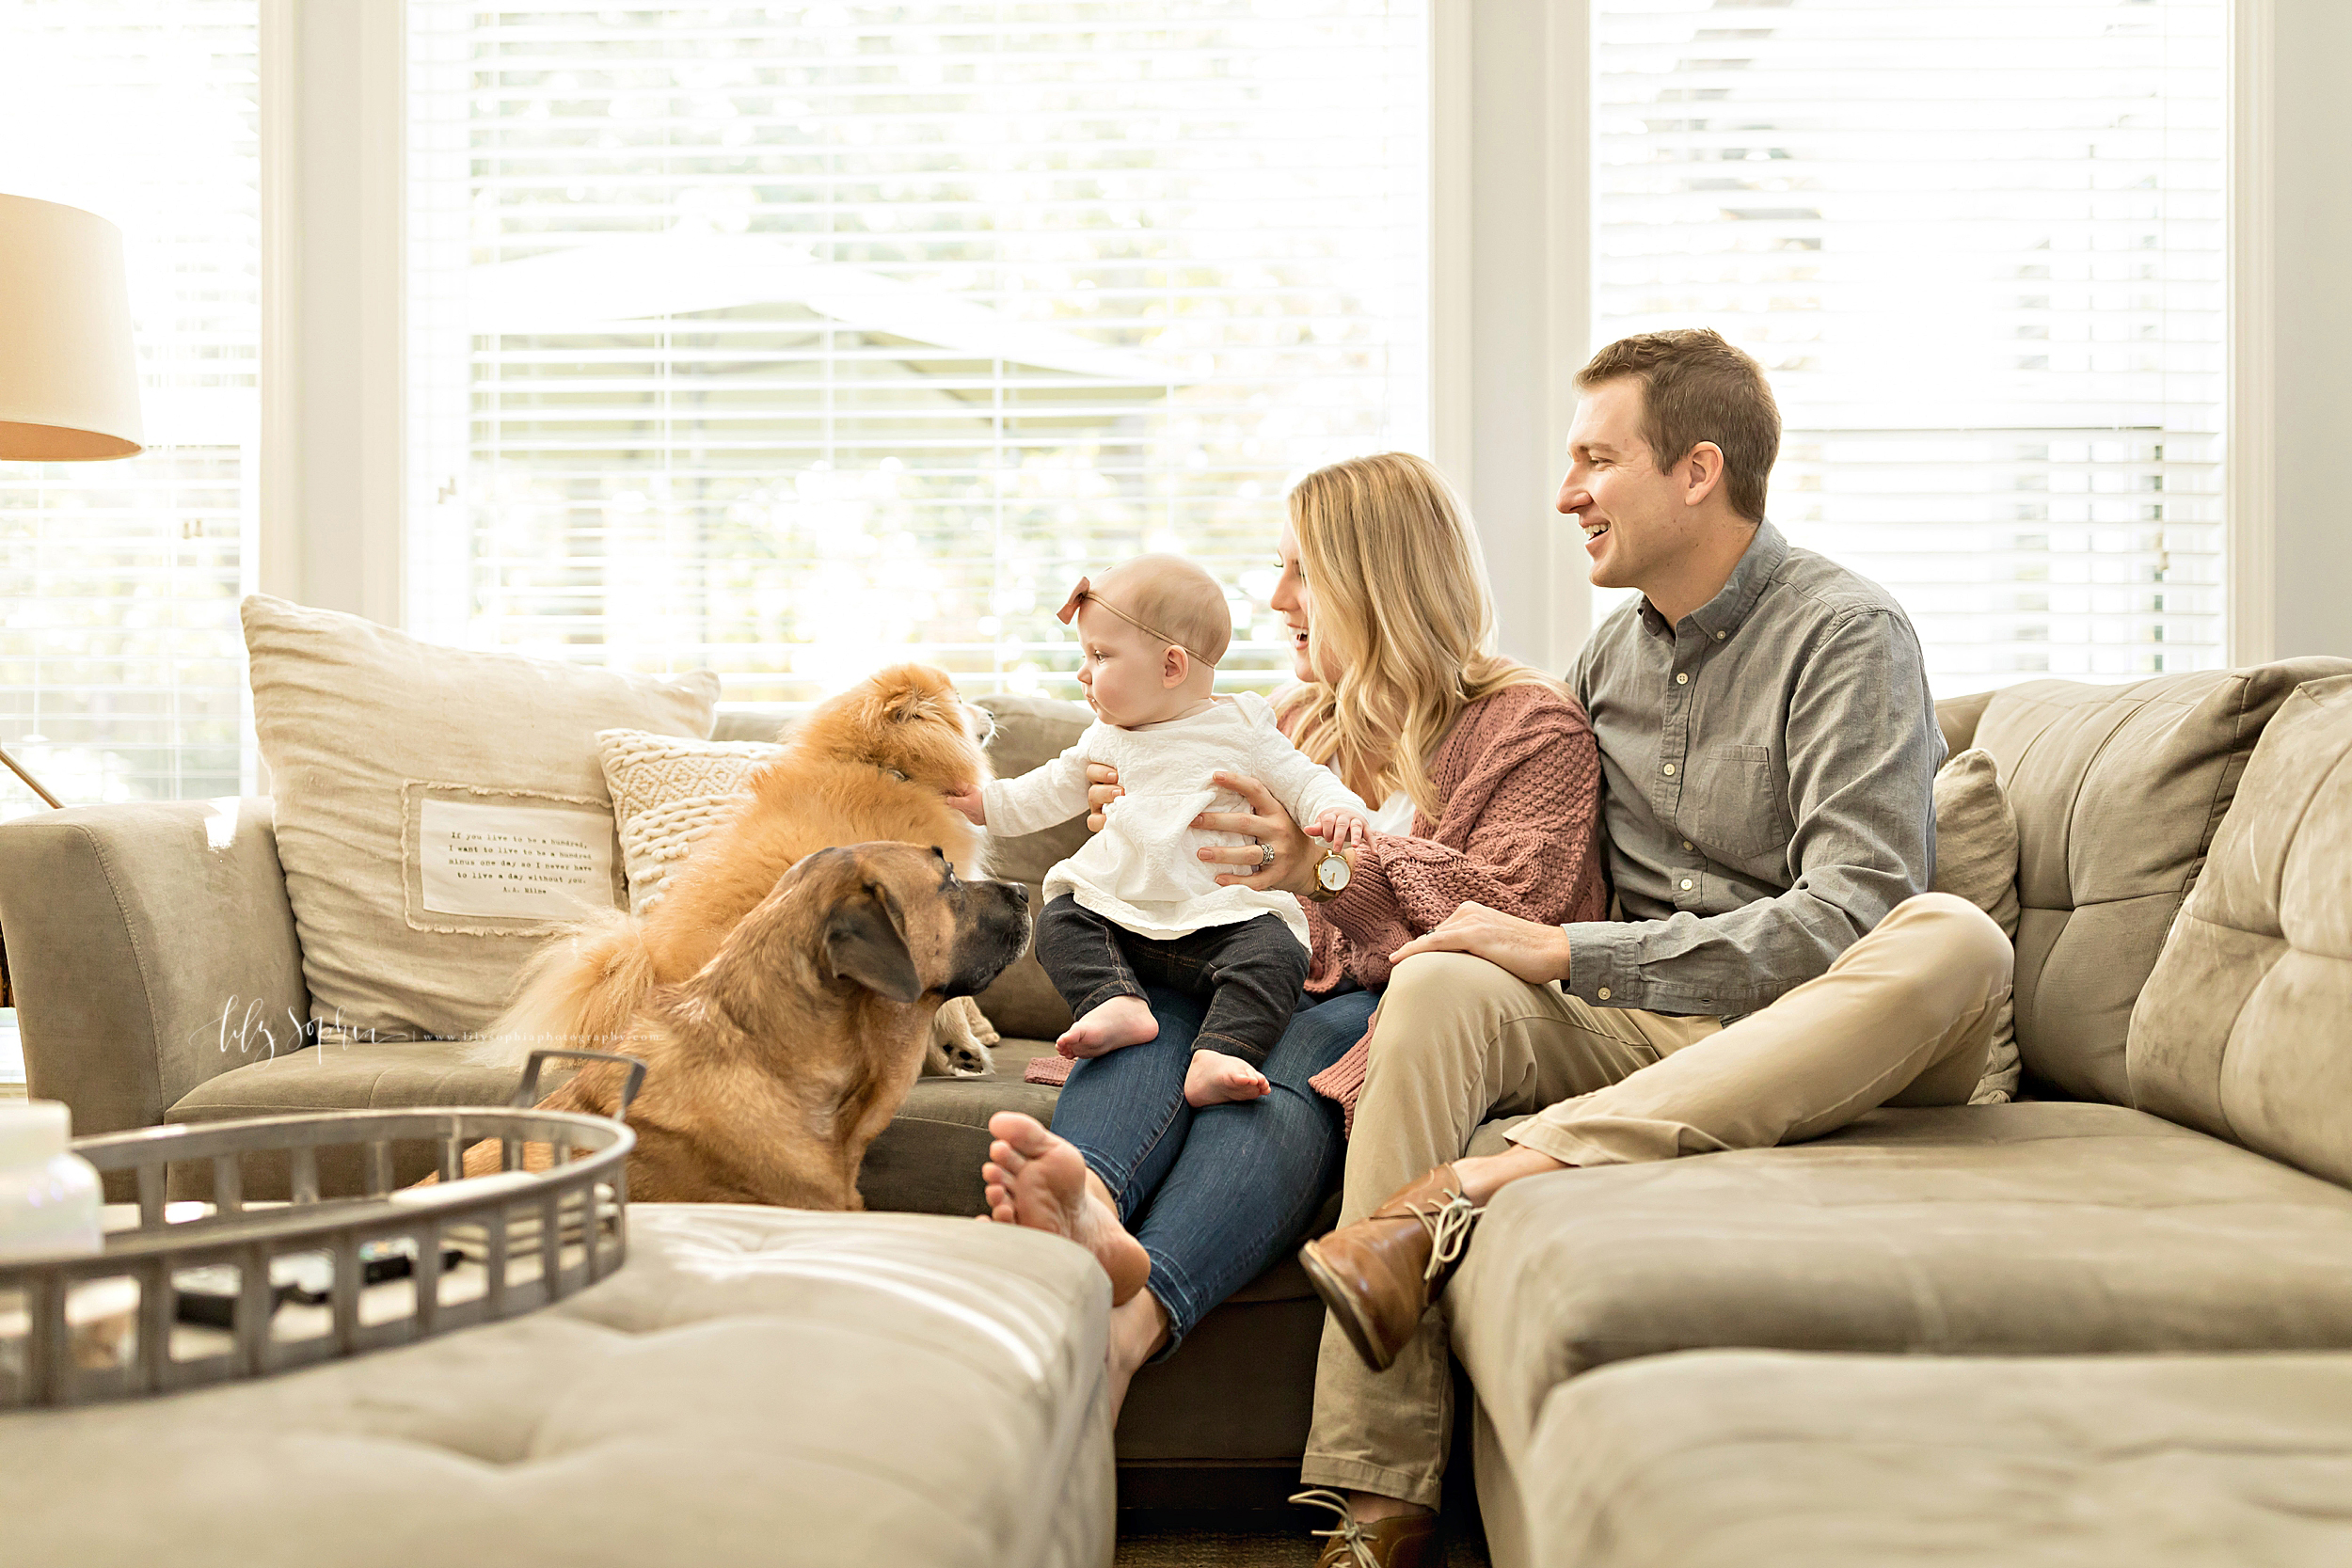 atlanta-midtown-brookhaven-ashford-dunwoody-virginia-highlands-roswell-decatur-lily-sophia-photography-in-home-six-month-milestone-family-lifestyle-session-sandy-springs_0649.jpg